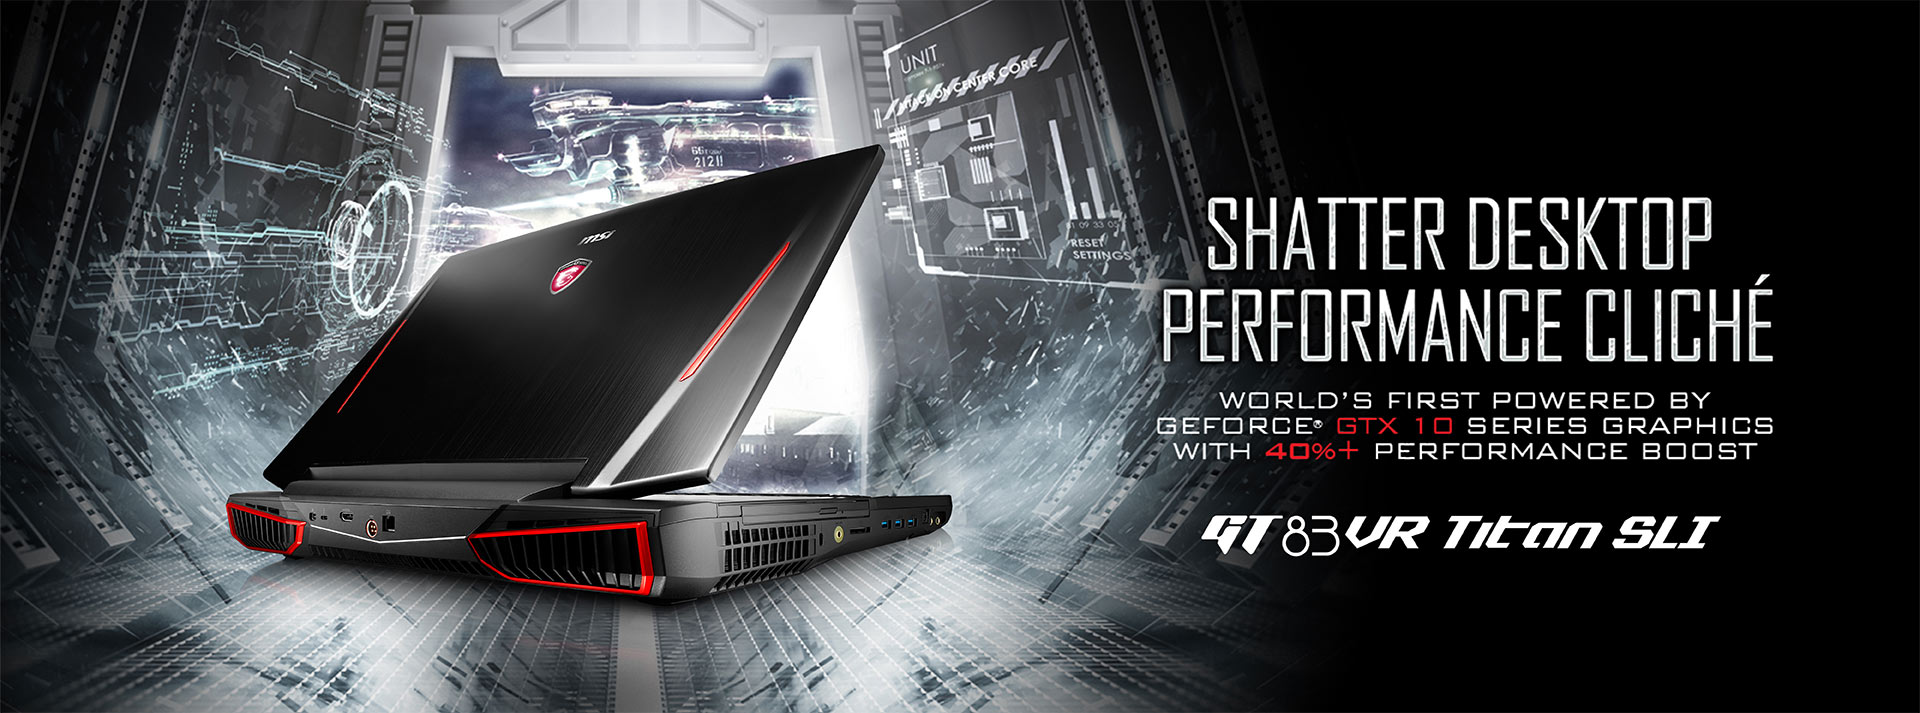 MSI - Il più potente notebook gaming